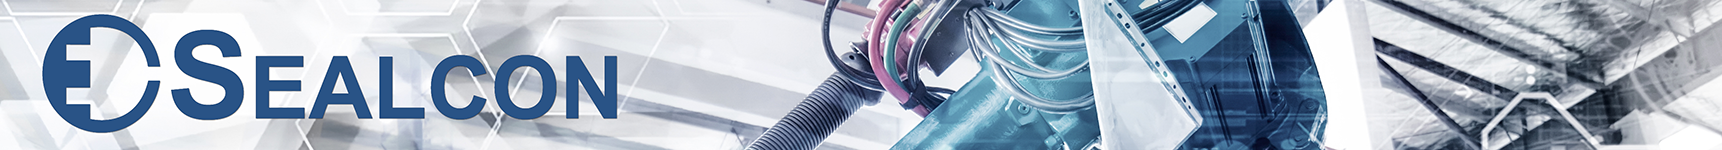 Sealcon carries Circular Connectors, Conduit Systems, Industrial Enclosures and                       Other Related Cable Managemen